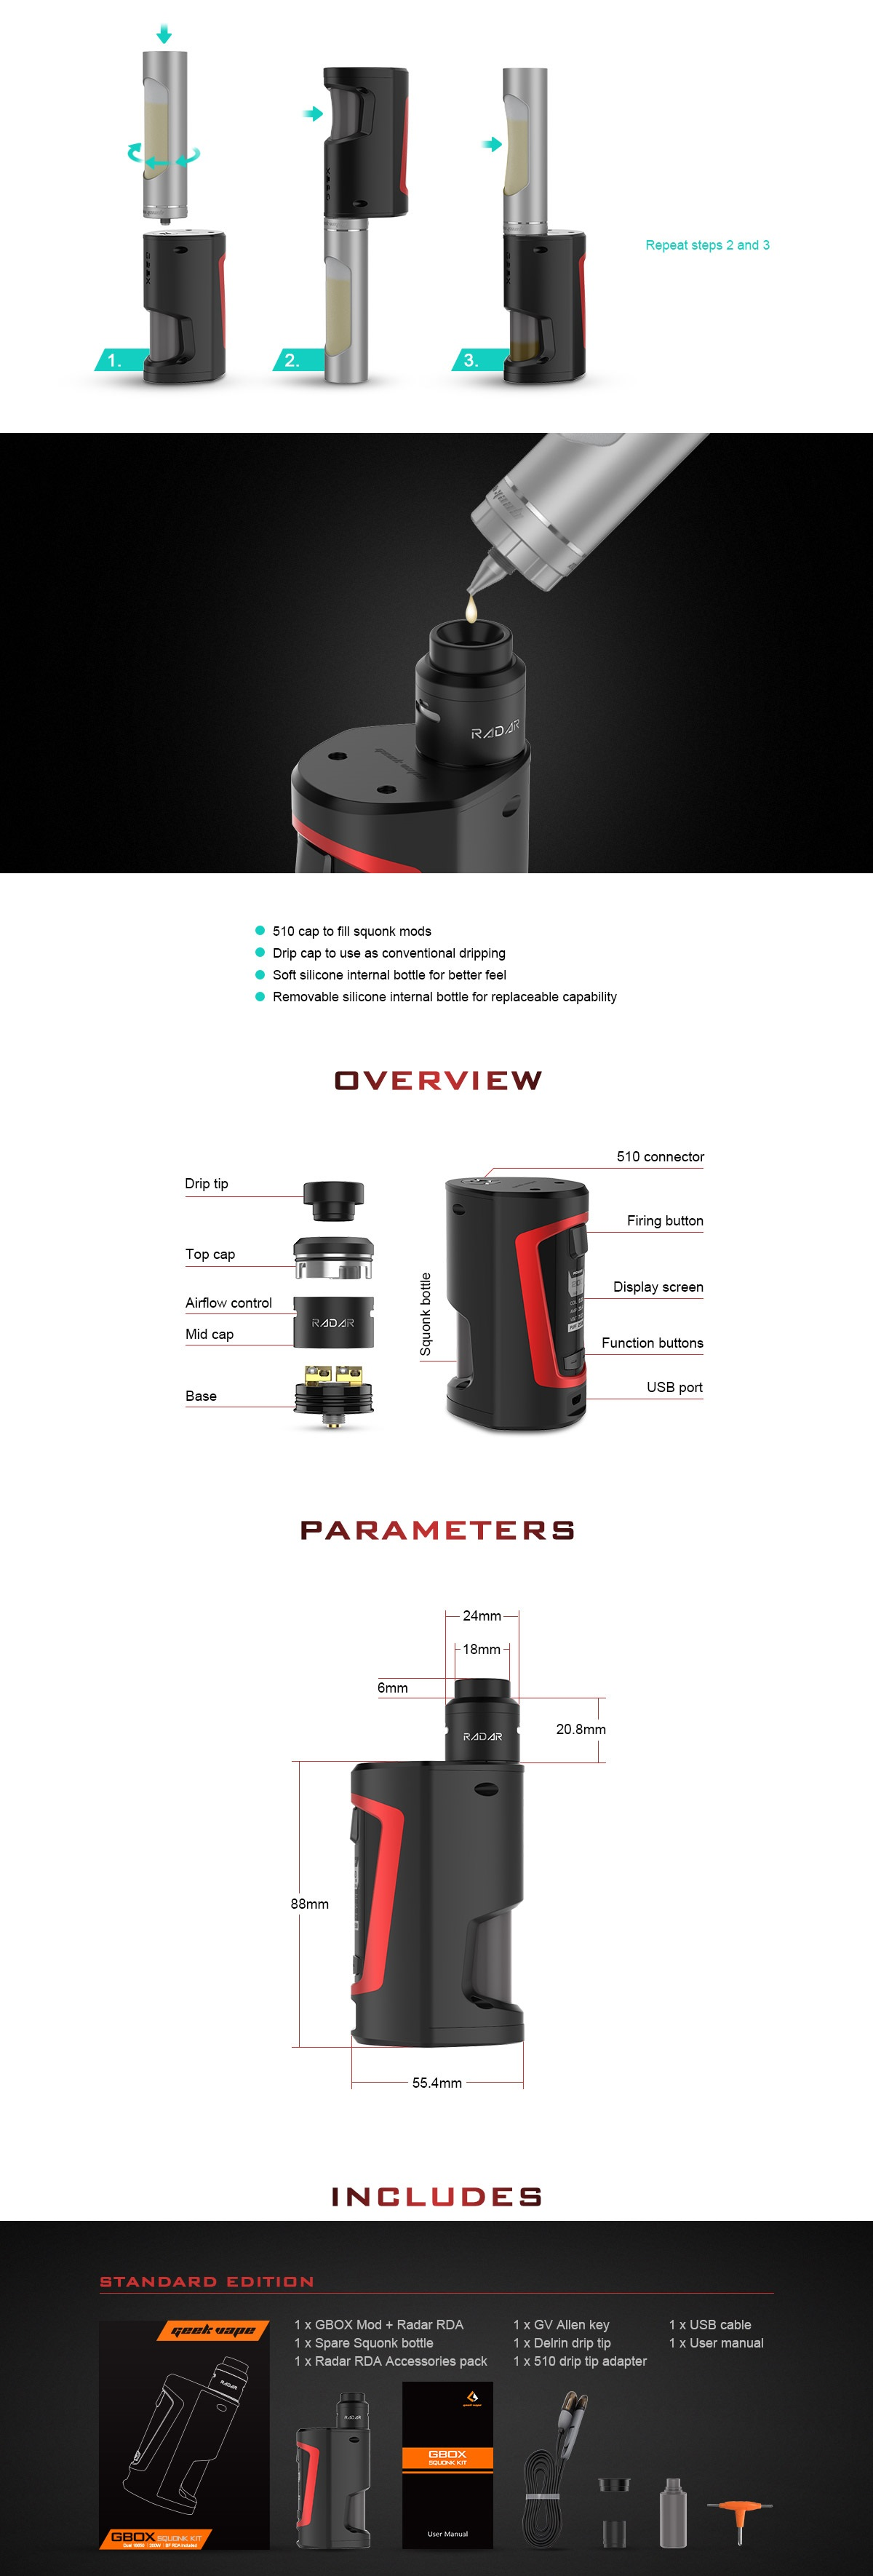 222cffe6a16f silicone internal bottle for long term economical usage due to its  replaceable capability. With 30ml ejuice capacity.